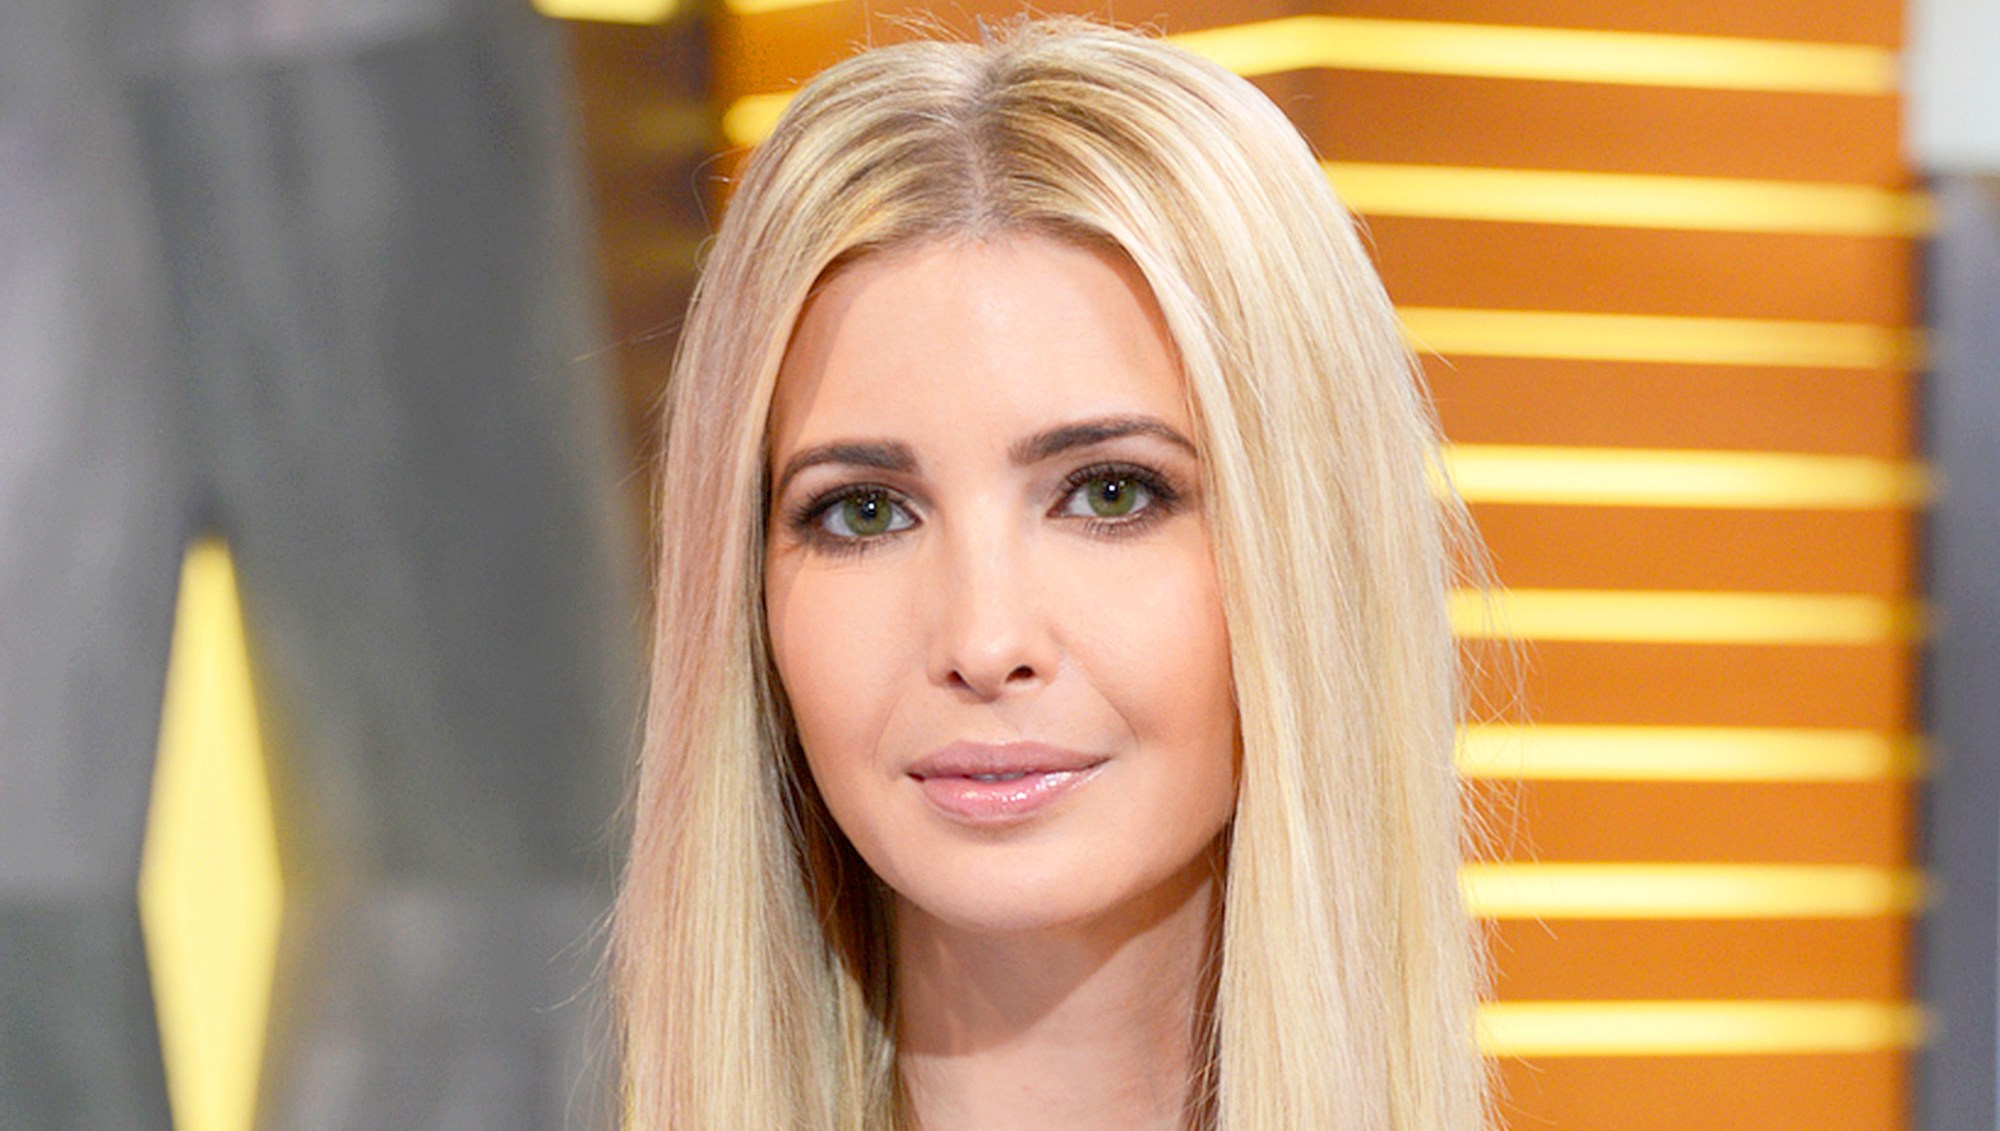 Ivanka Trump visits 'Good Morning America'